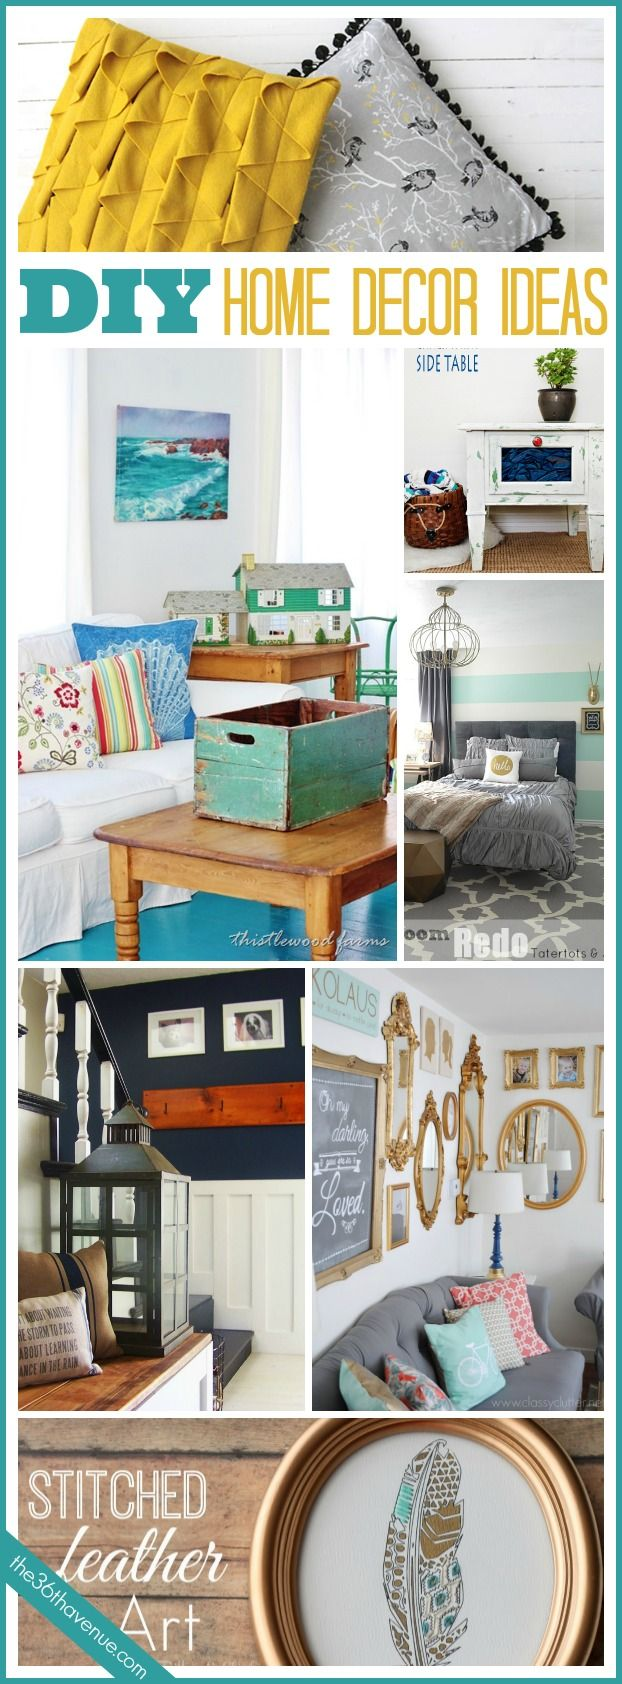 20 Diy Home Decor Projects Home Diy Diy Home Decor Diy Home Decor Projects